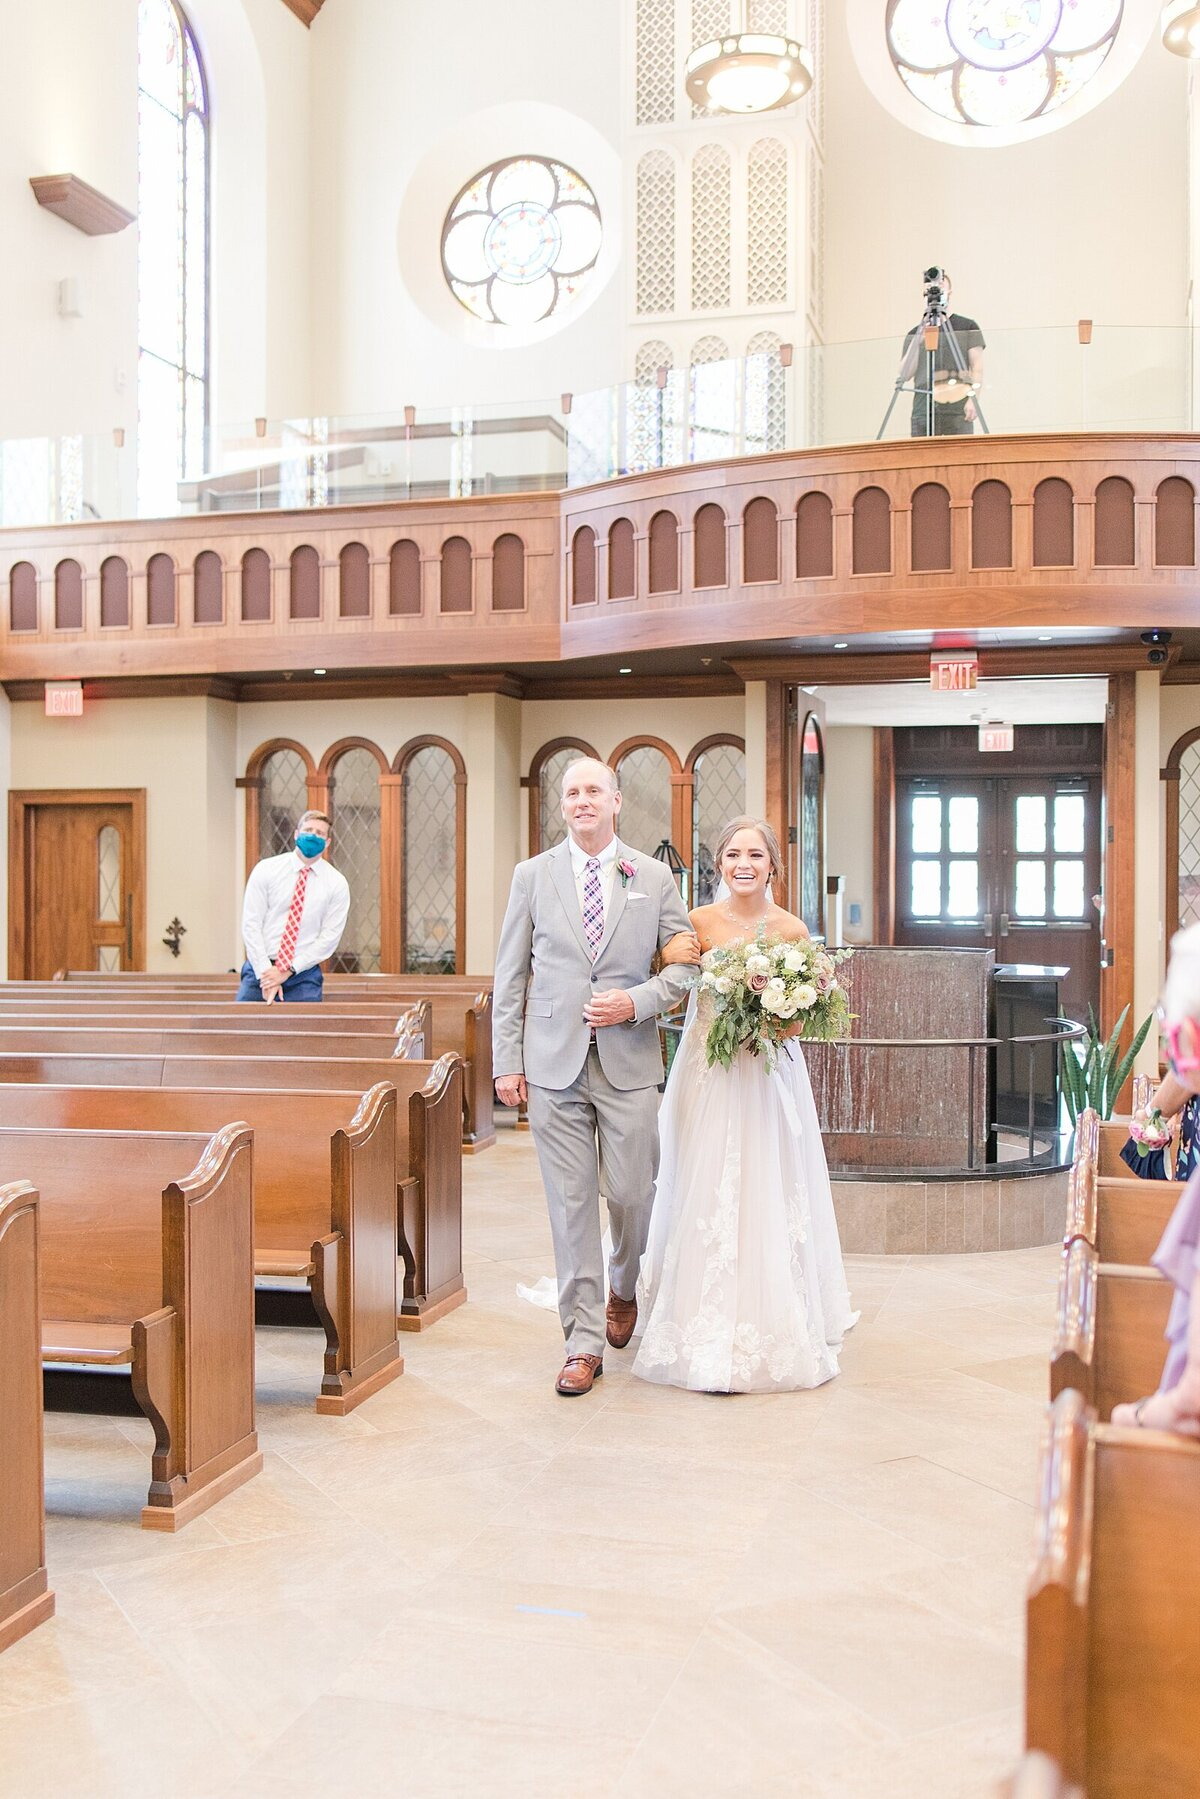 Kara Webster Photography | Meredith & Tyler | University Of Dayton Marriott Wedding Photographer_0032